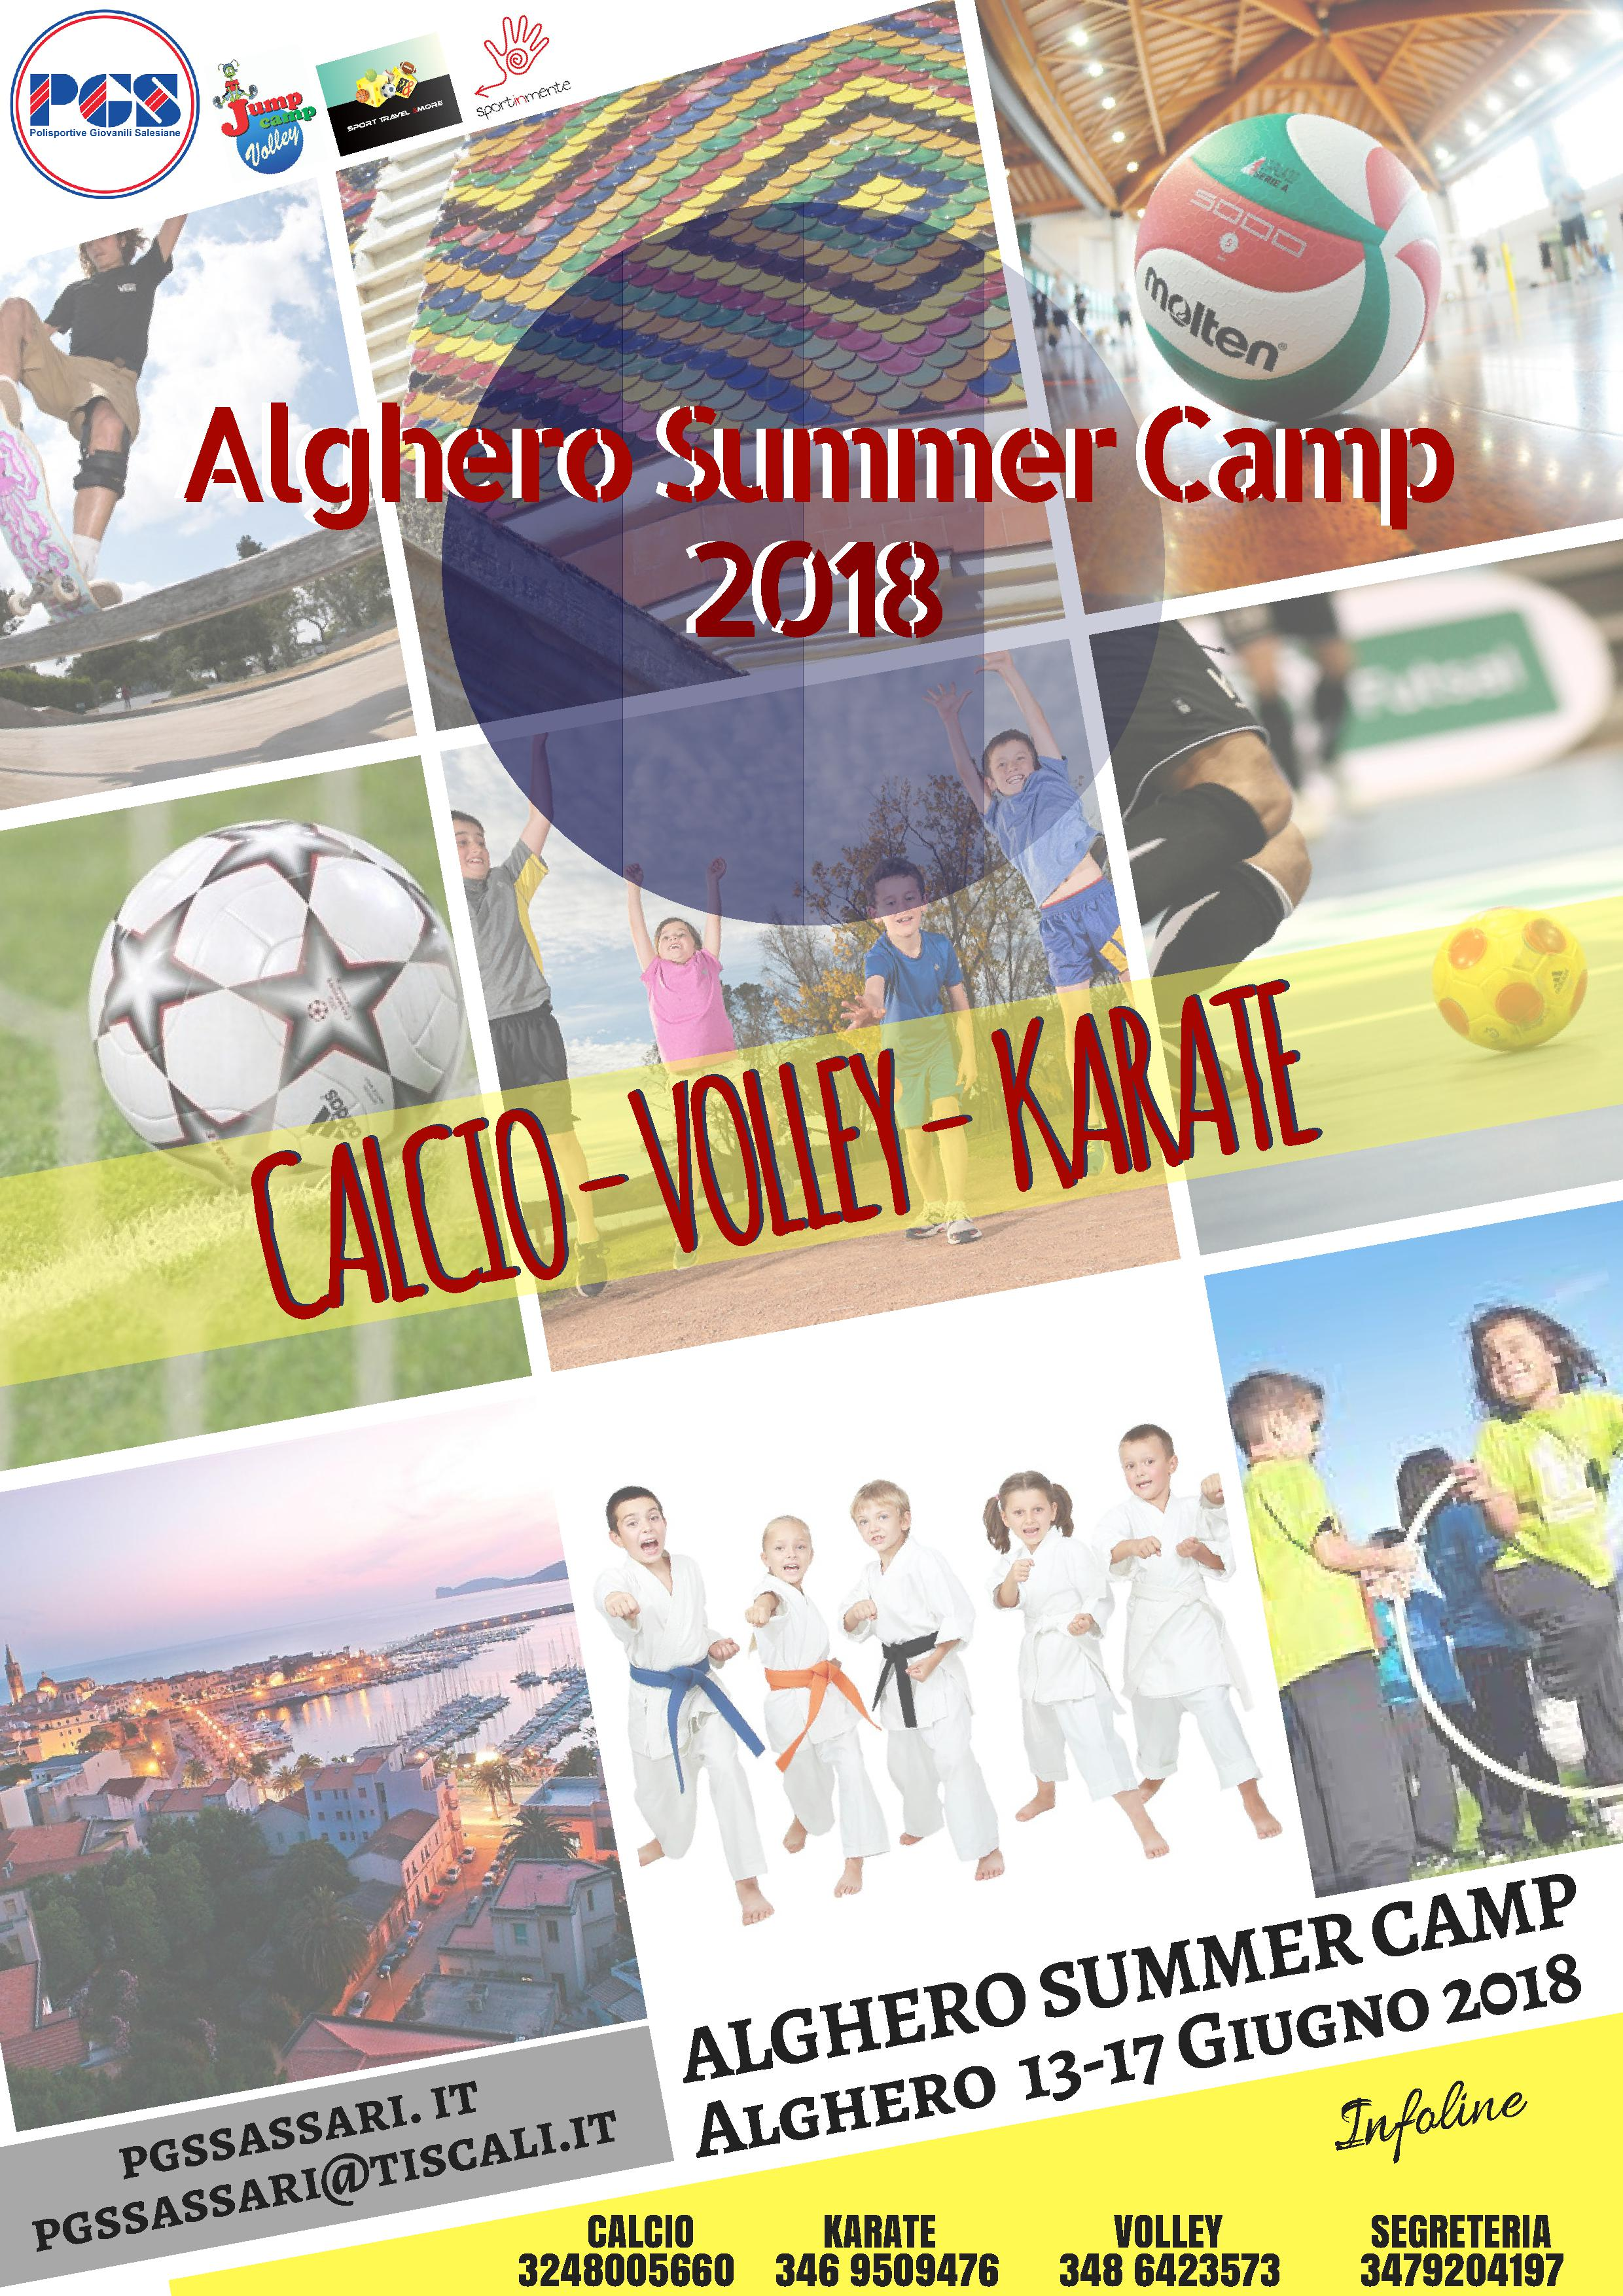 ALGHERO SUMMER CAMP 2018